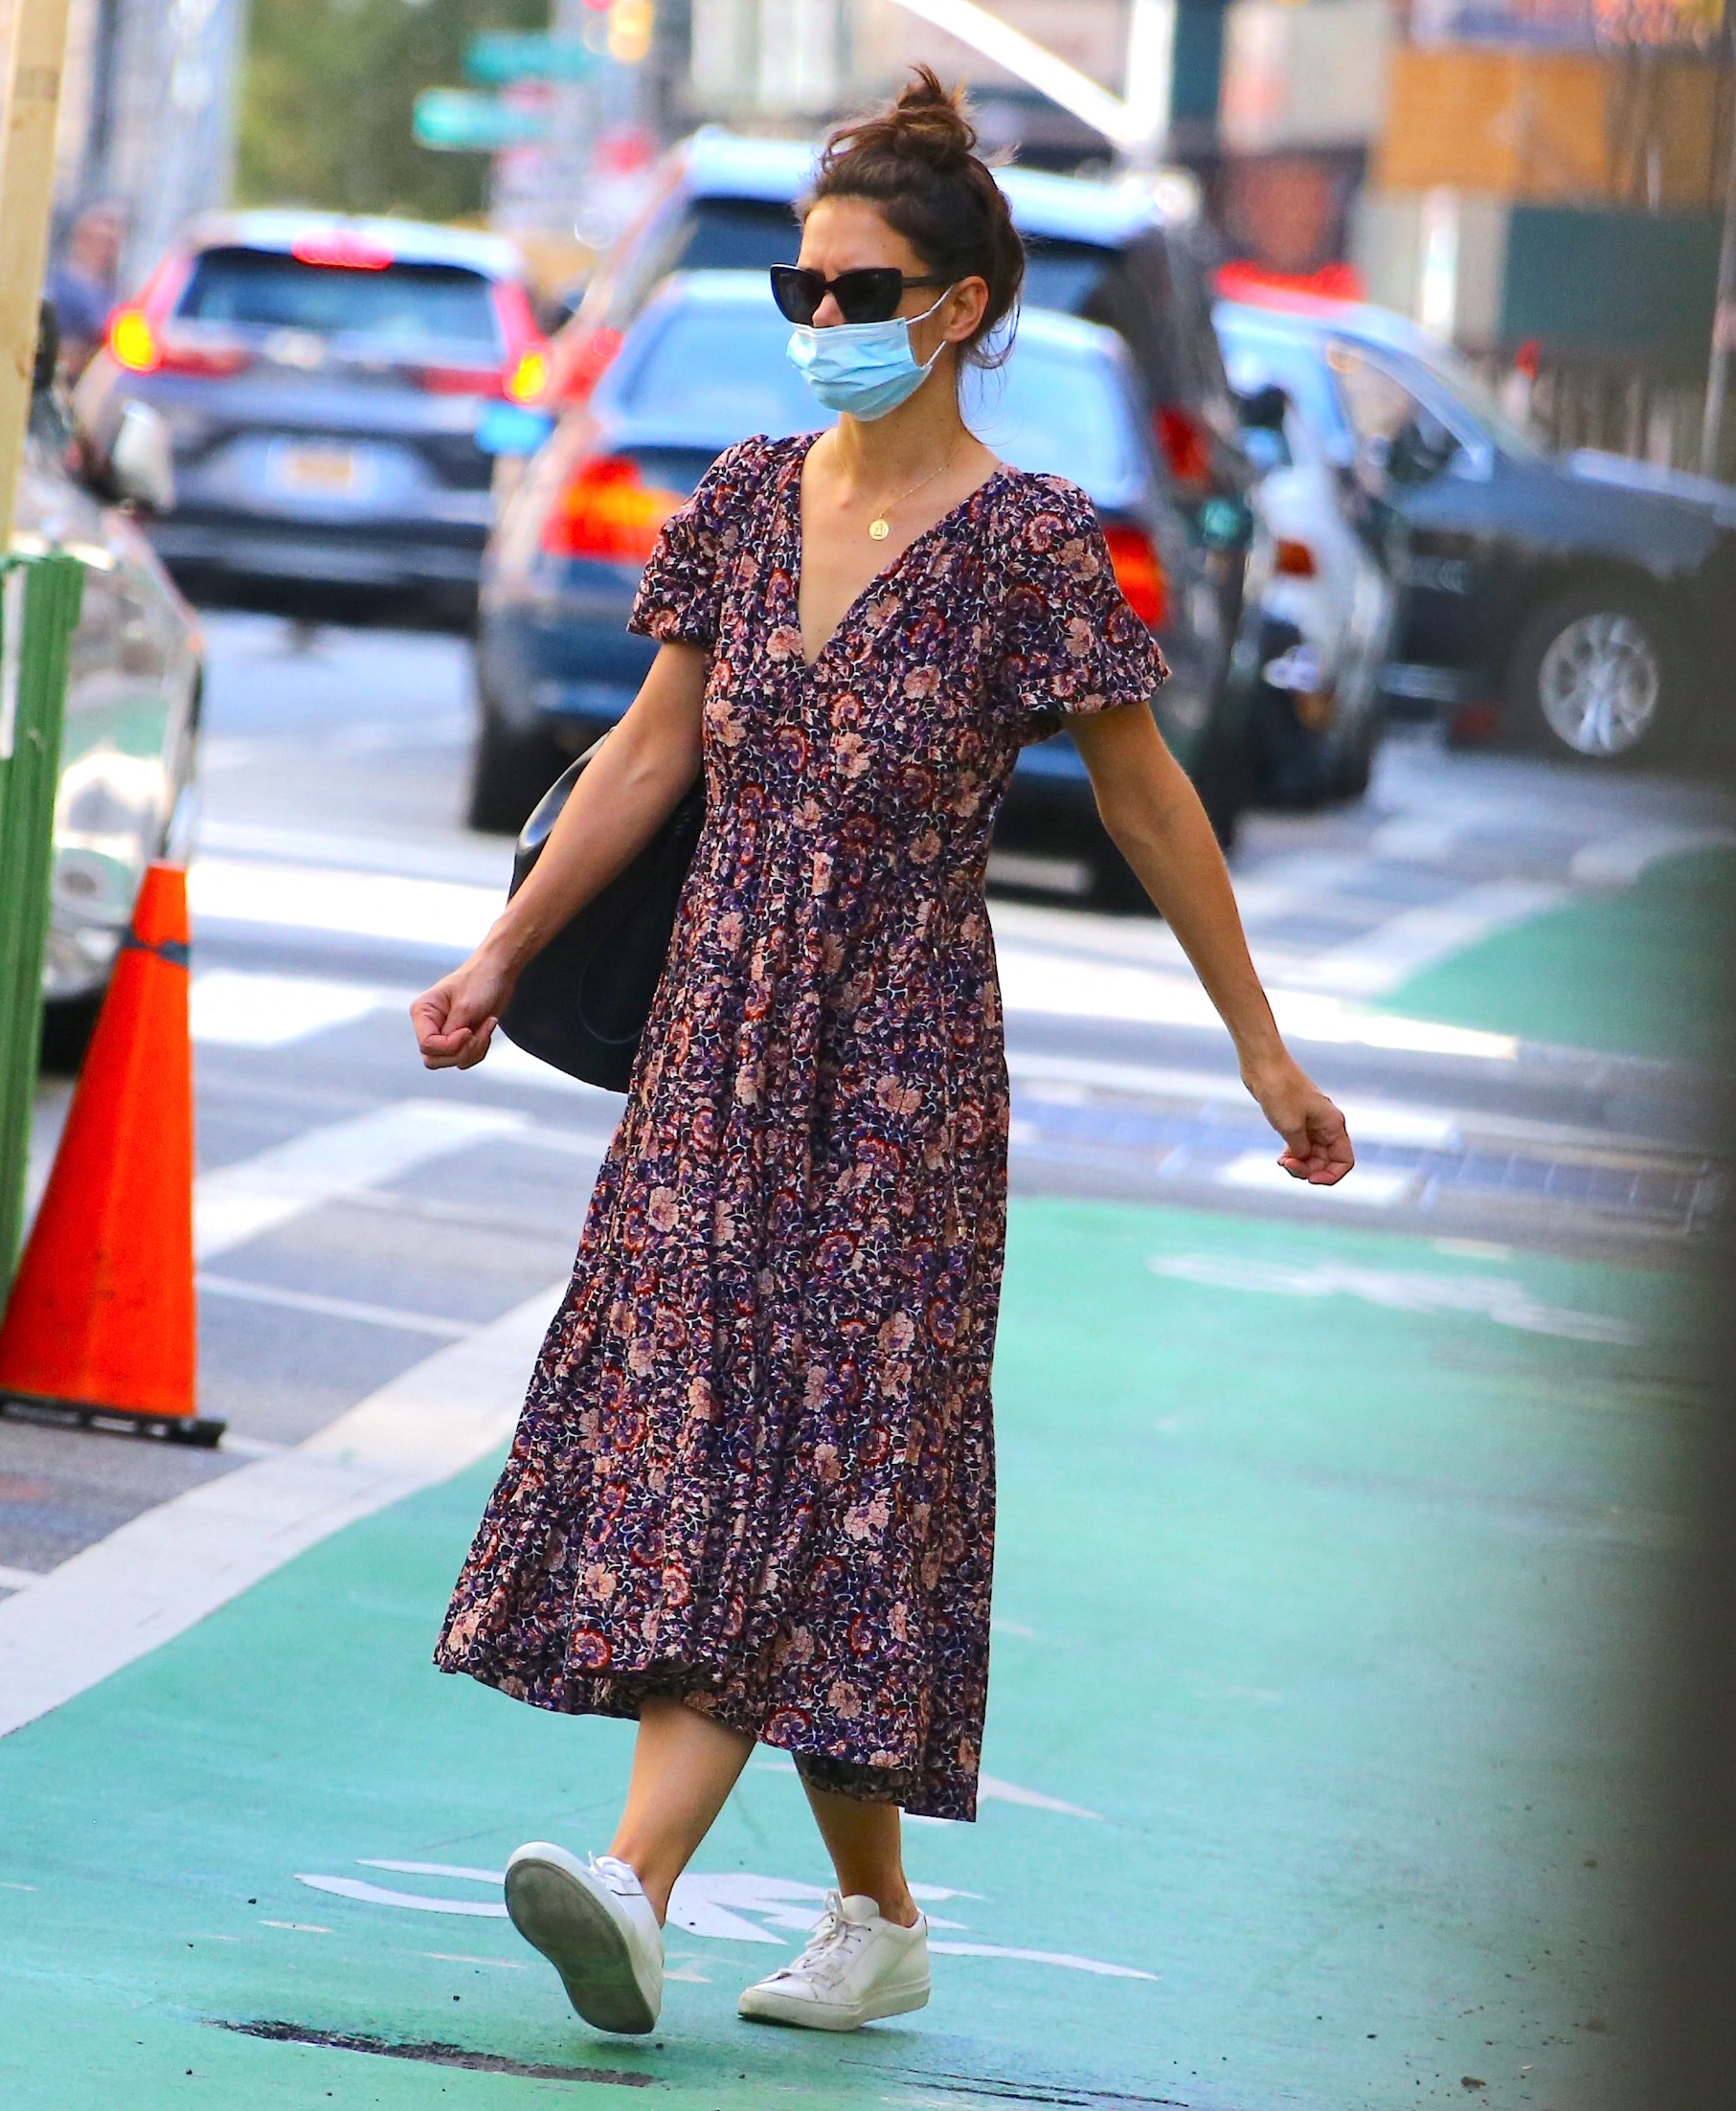 U.S actress Katie Holmes with her new boyfriend Emilio Vitolo jr are having lunch at Le Botaniste restaurant in Soho then Katie is coming back home and Emilio went to his restaurant Emilio's Ballato in New York on September 28, 2020.,Image: 560363255, License: Rights-managed, Restrictions: , Model Release: no, Credit line: Dylan Travis/ABACA / Abaca Press / Profimedia